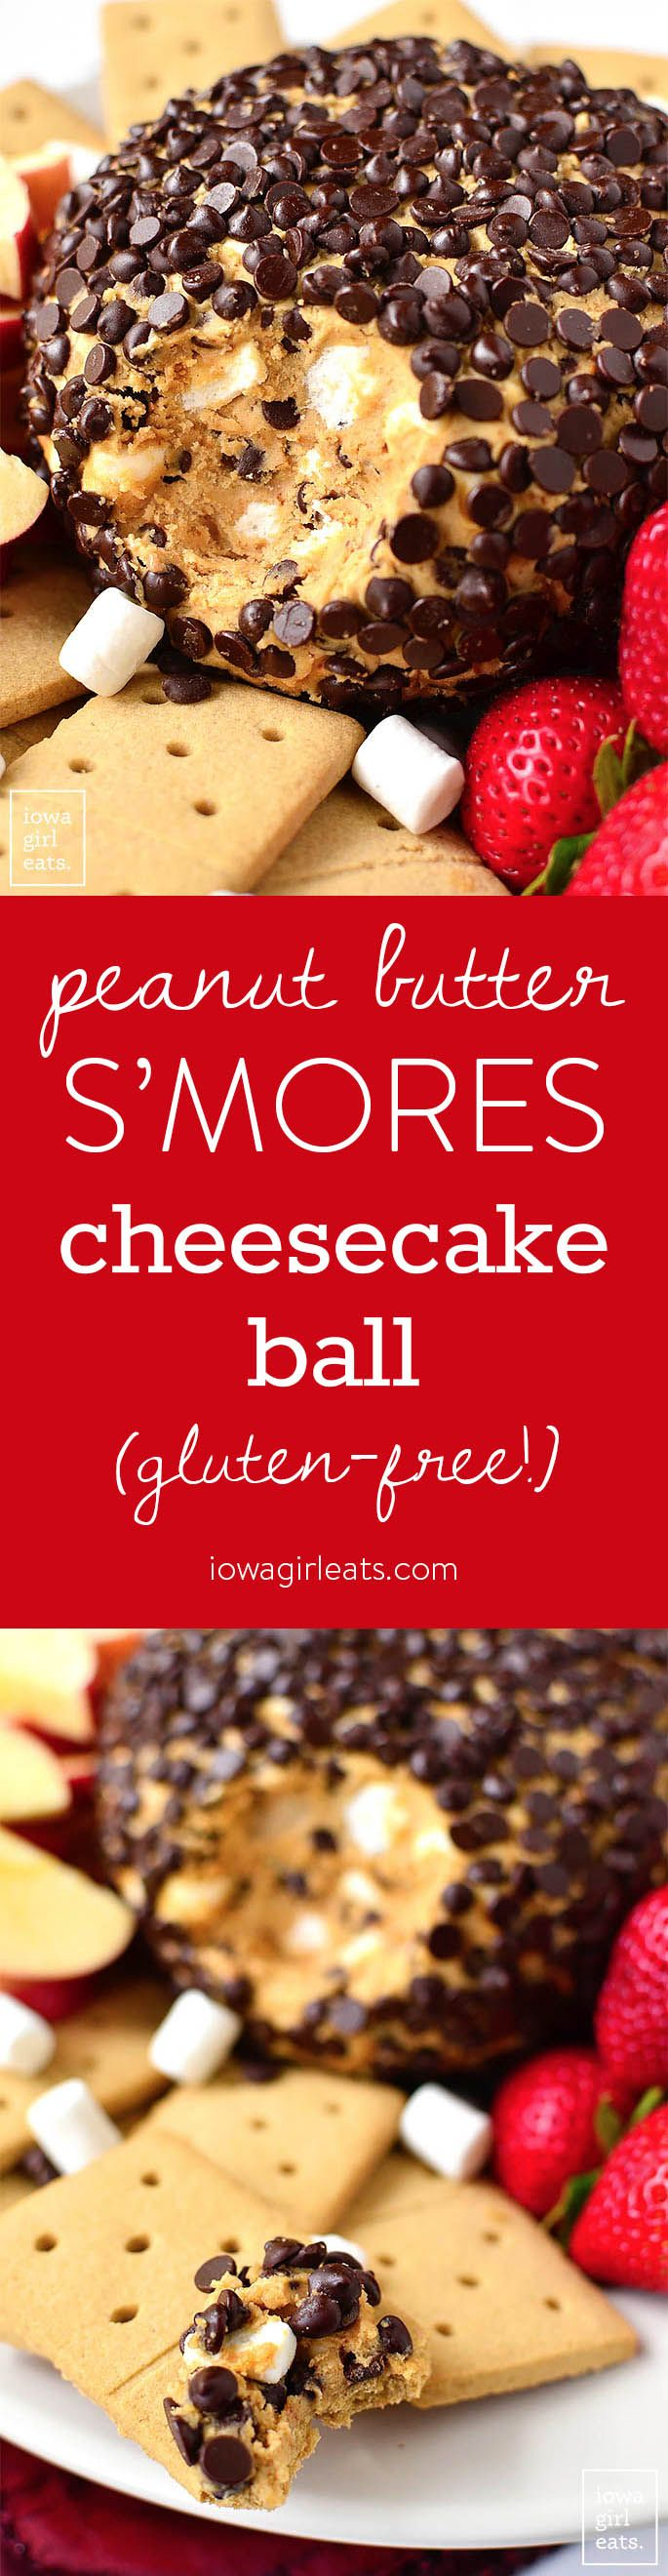 Peanut Butter S'Mores Cheesecake Ball is ridiculously delicious and decadent - the perfect gluten-free party treat for summer or any time of year!   iowagirleats.com